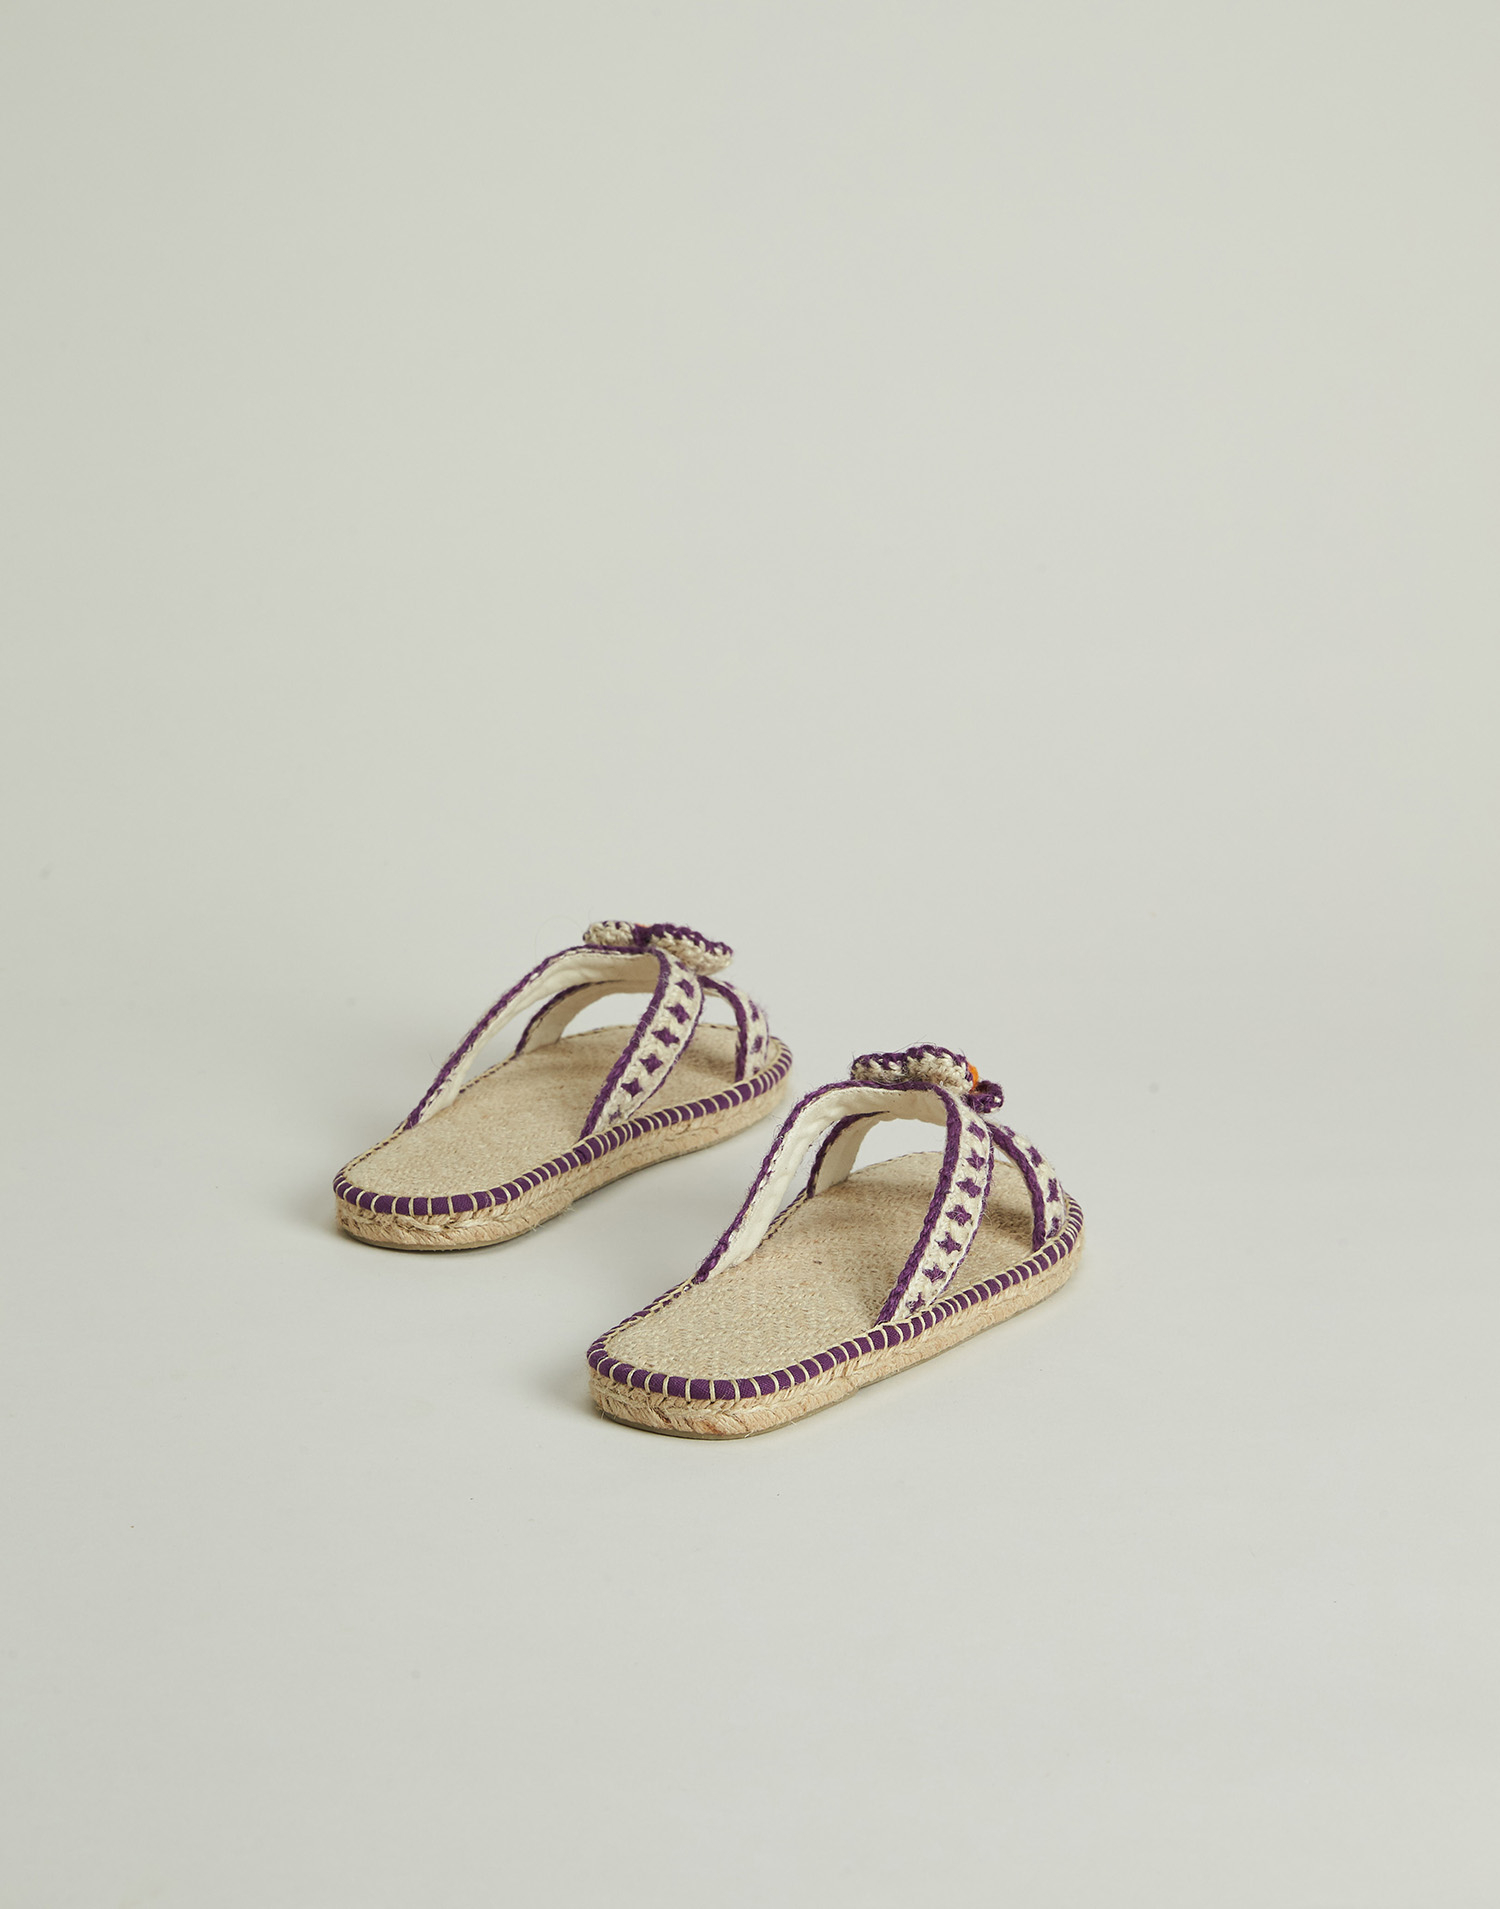 Daisy crocheted hemp sandal